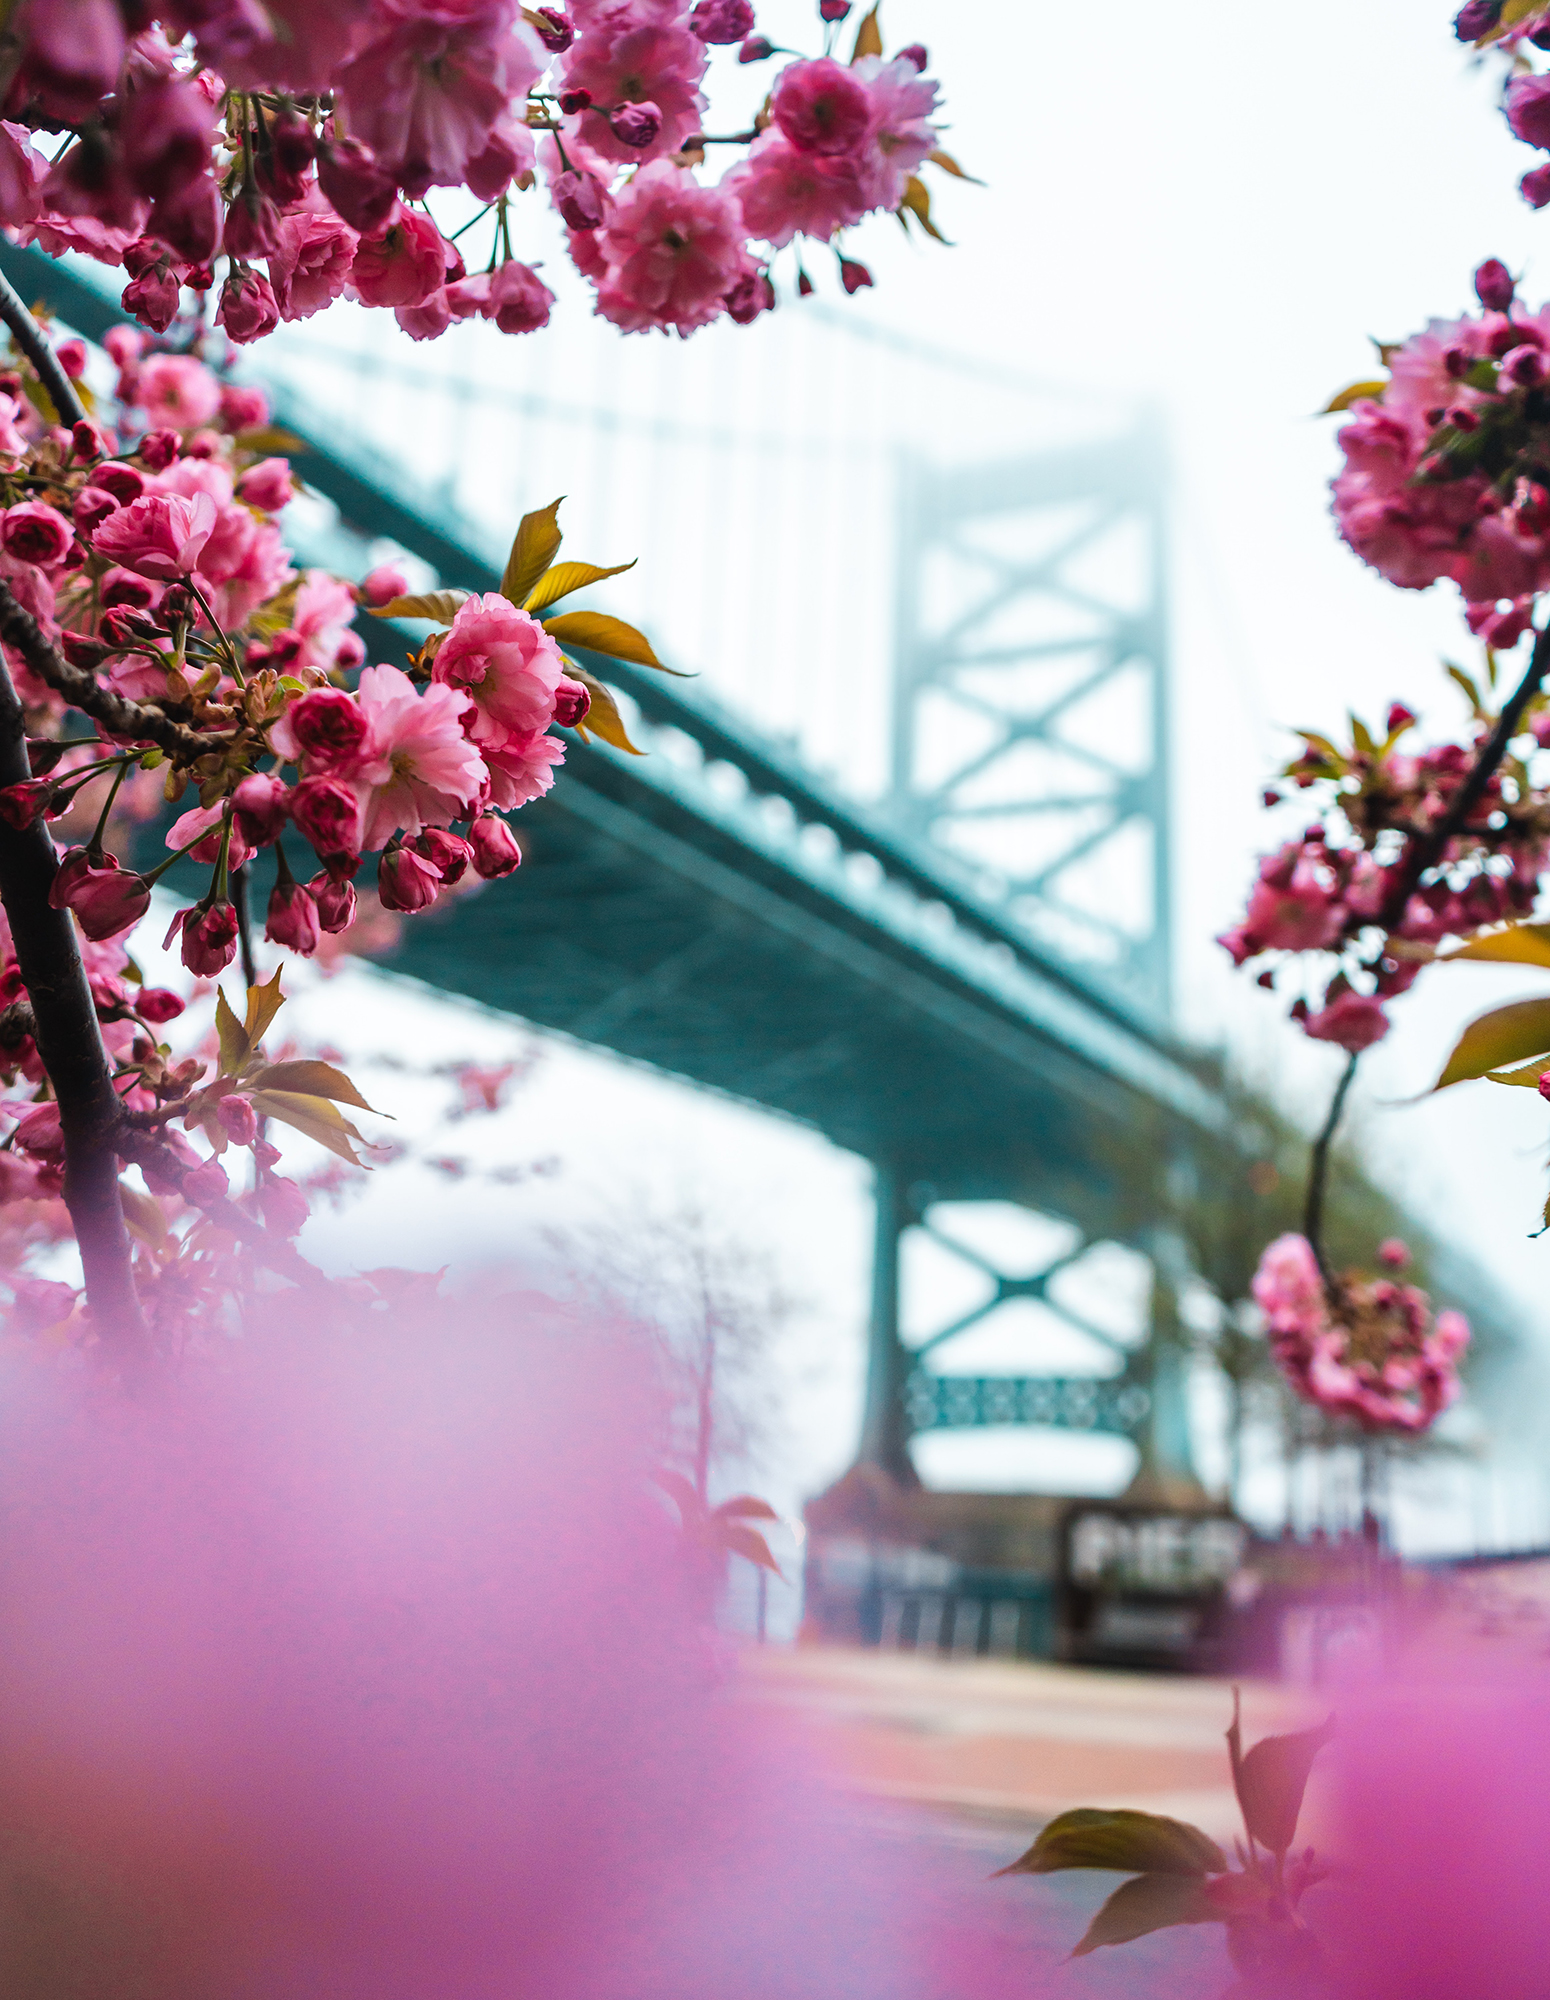 Cherry blossoms with a large, blue-grey suspension bridge in the background.